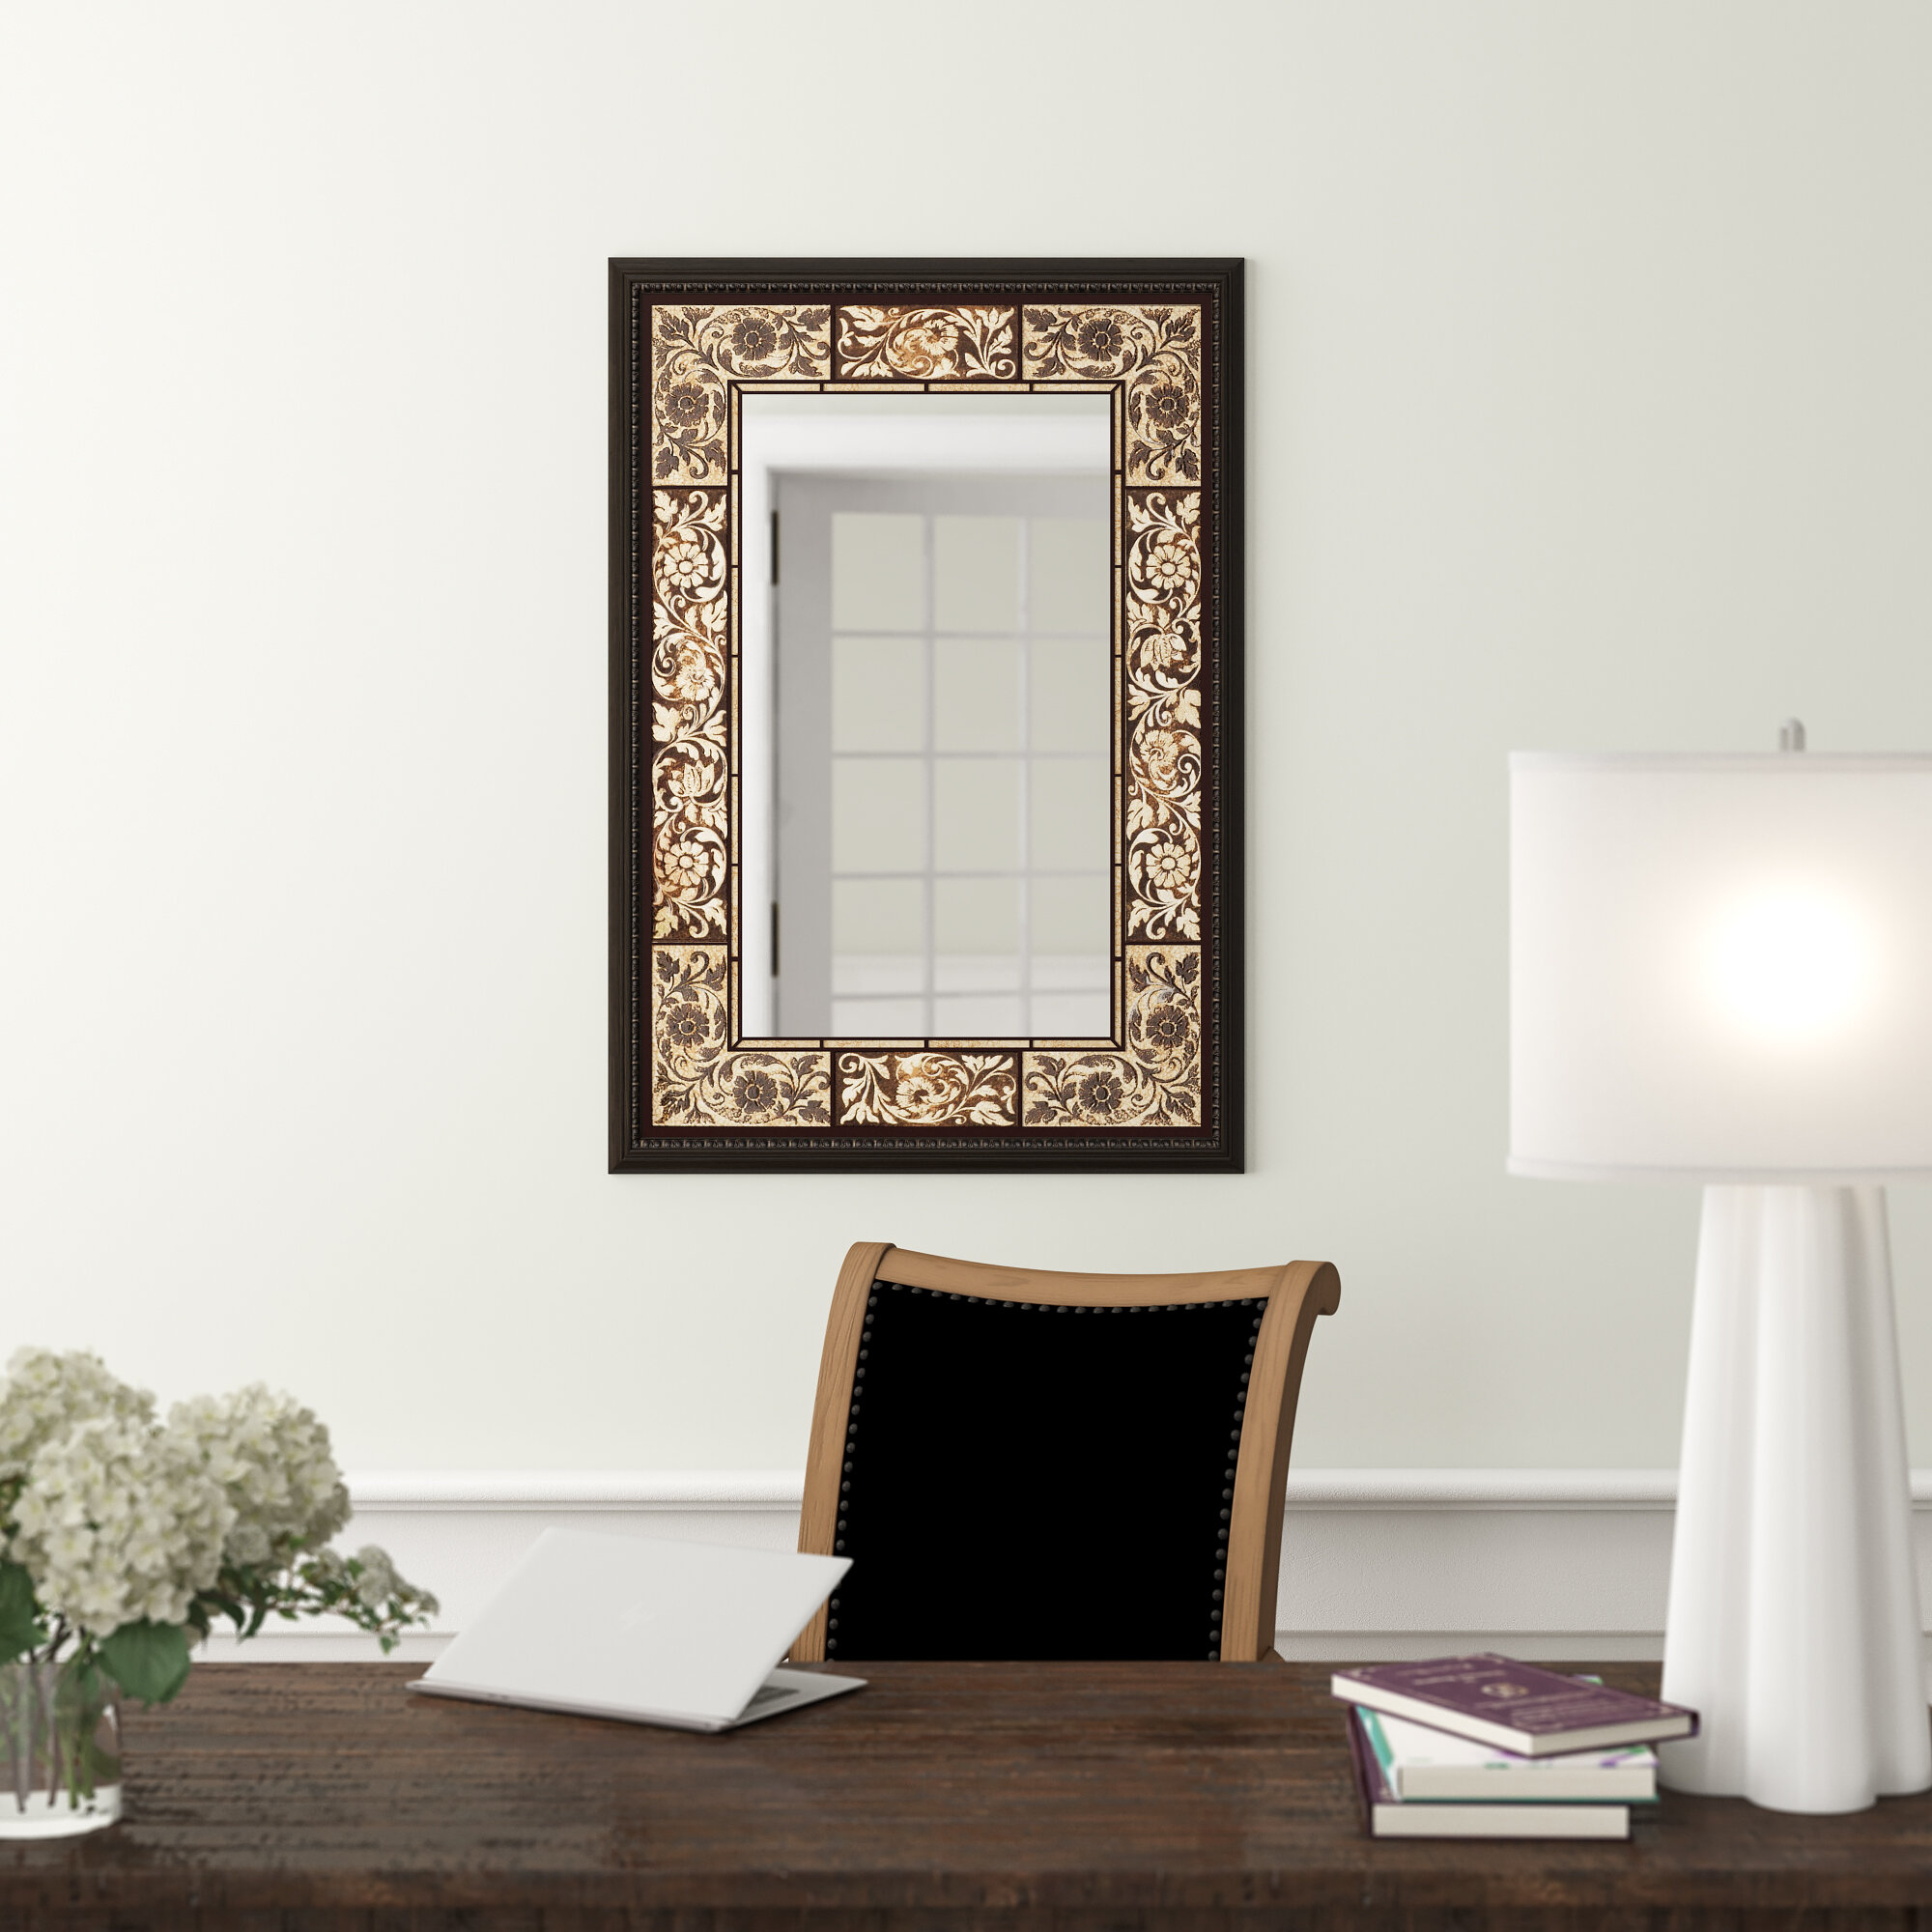 Tile Rectangle Accent Wall Mirror Pertaining To Hussain Tile Accent Wall Mirrors (Image 16 of 20)